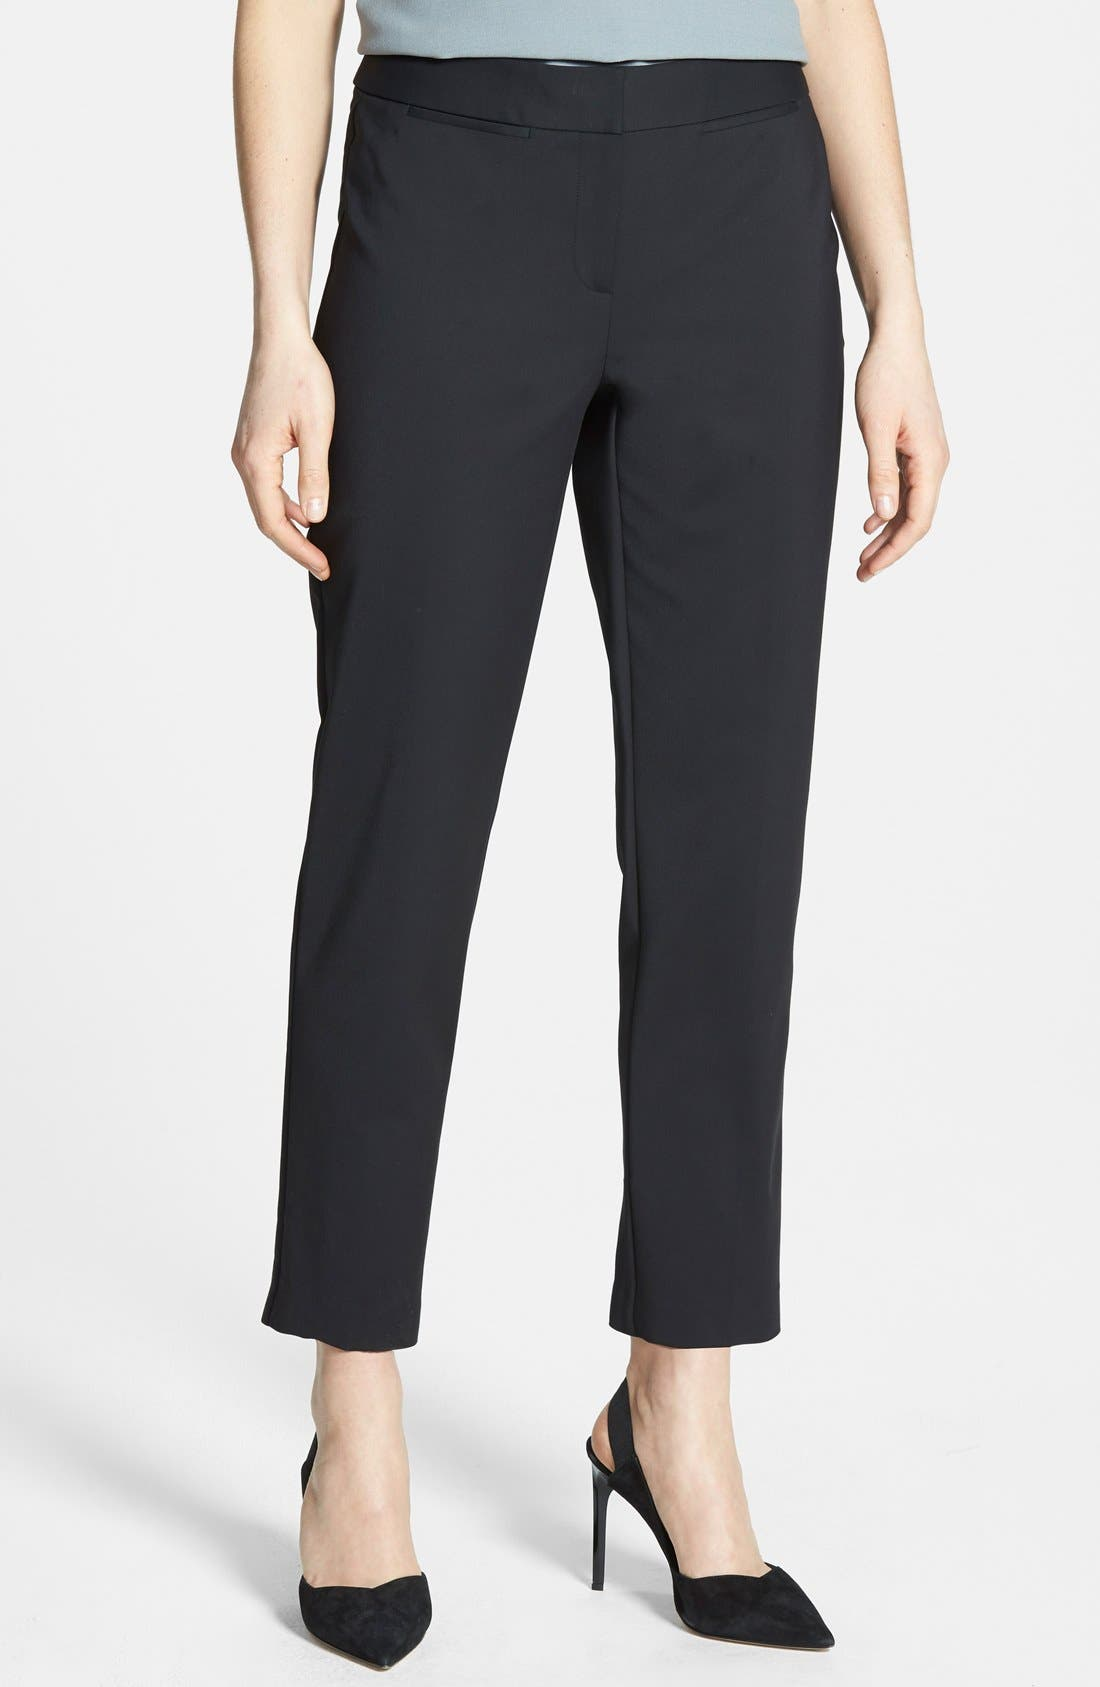 Main Image - Nordstrom Collection 'Veloria' Slim Ankle Pants